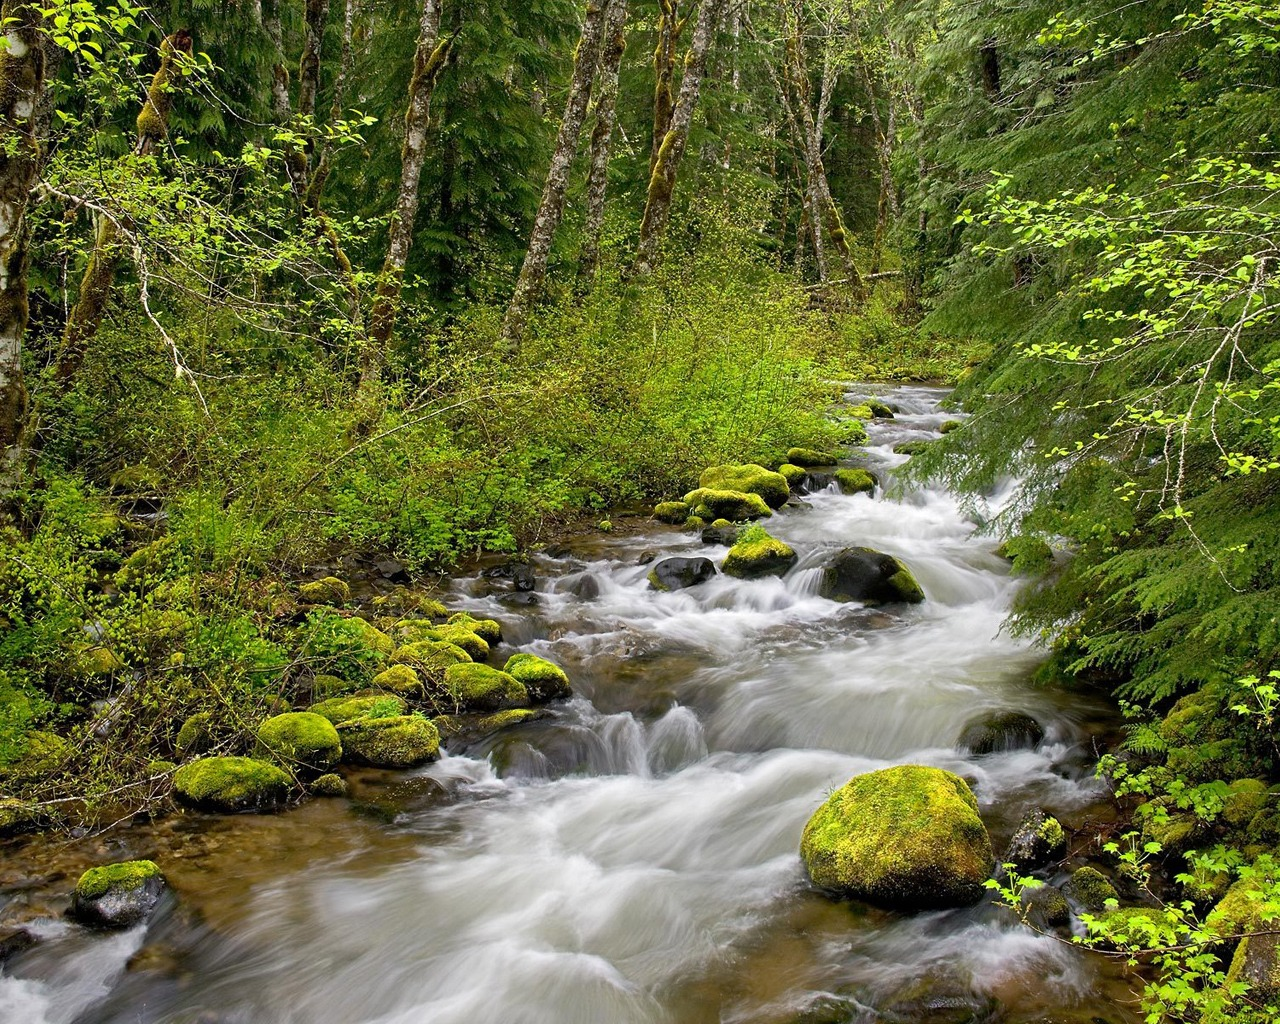 forest river wallpaper rivers nature wallpapers in jpg format for